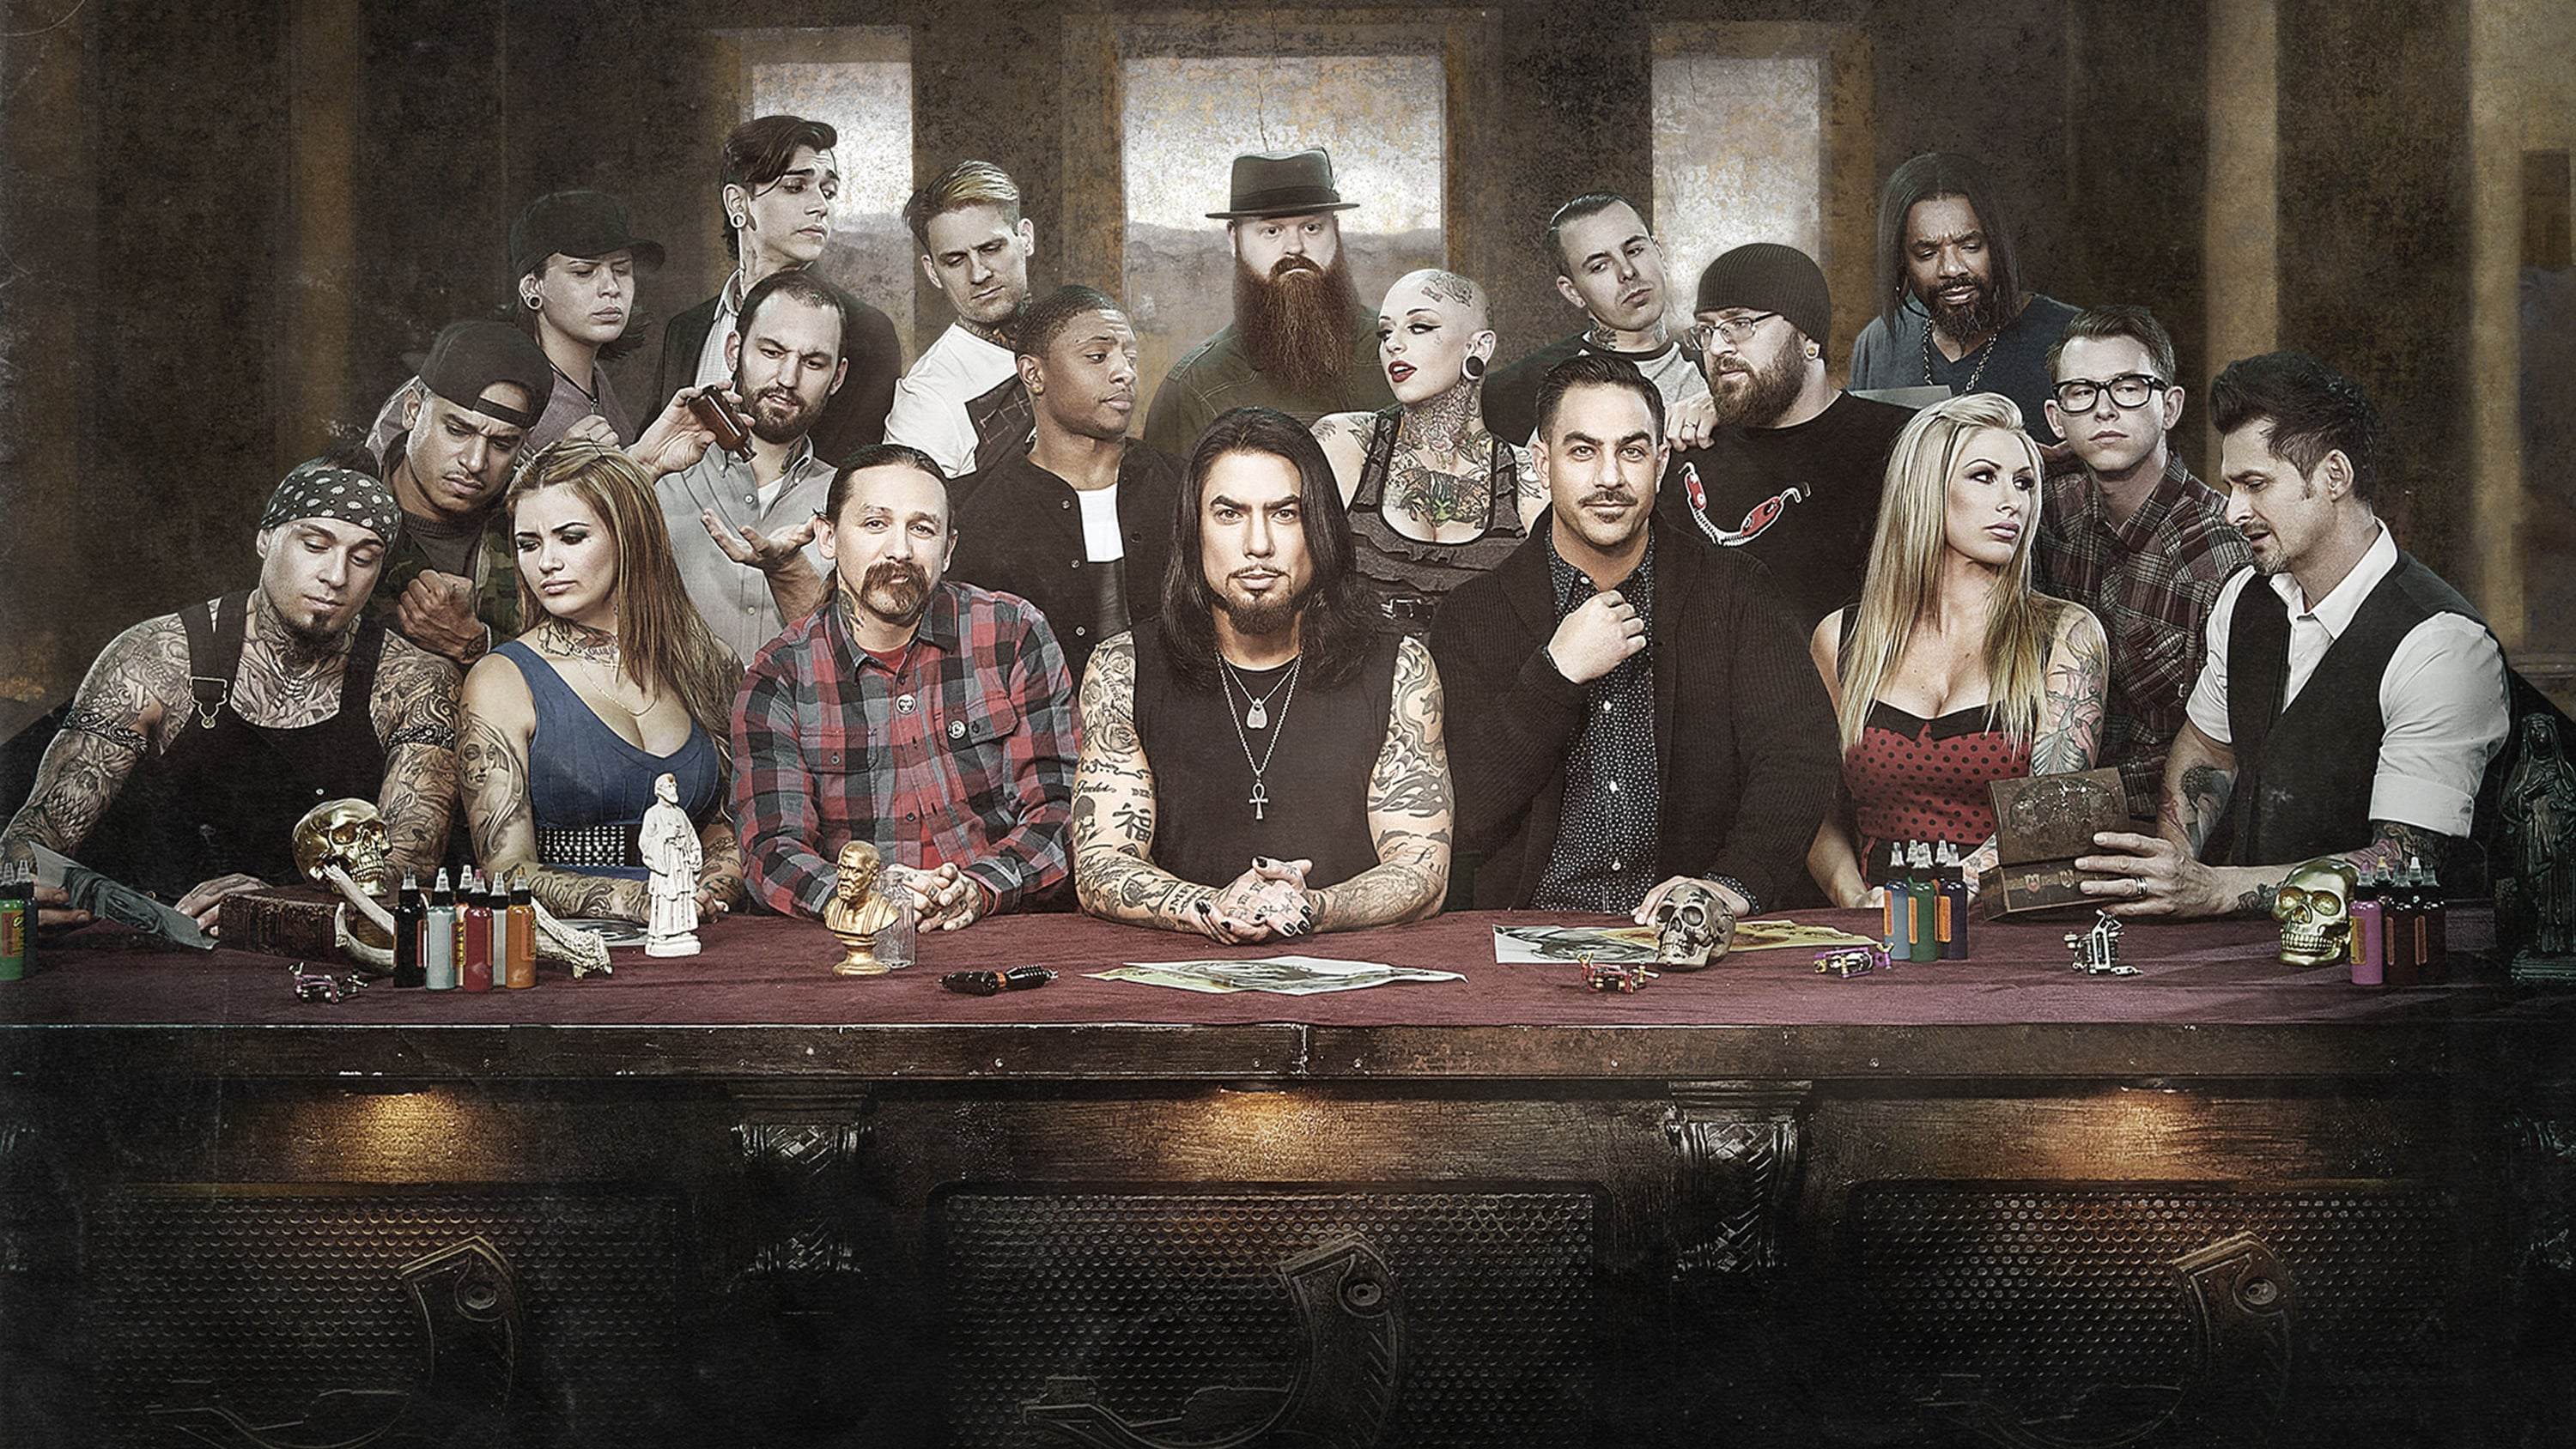 Ink Master - Peck Vs. Nuñez